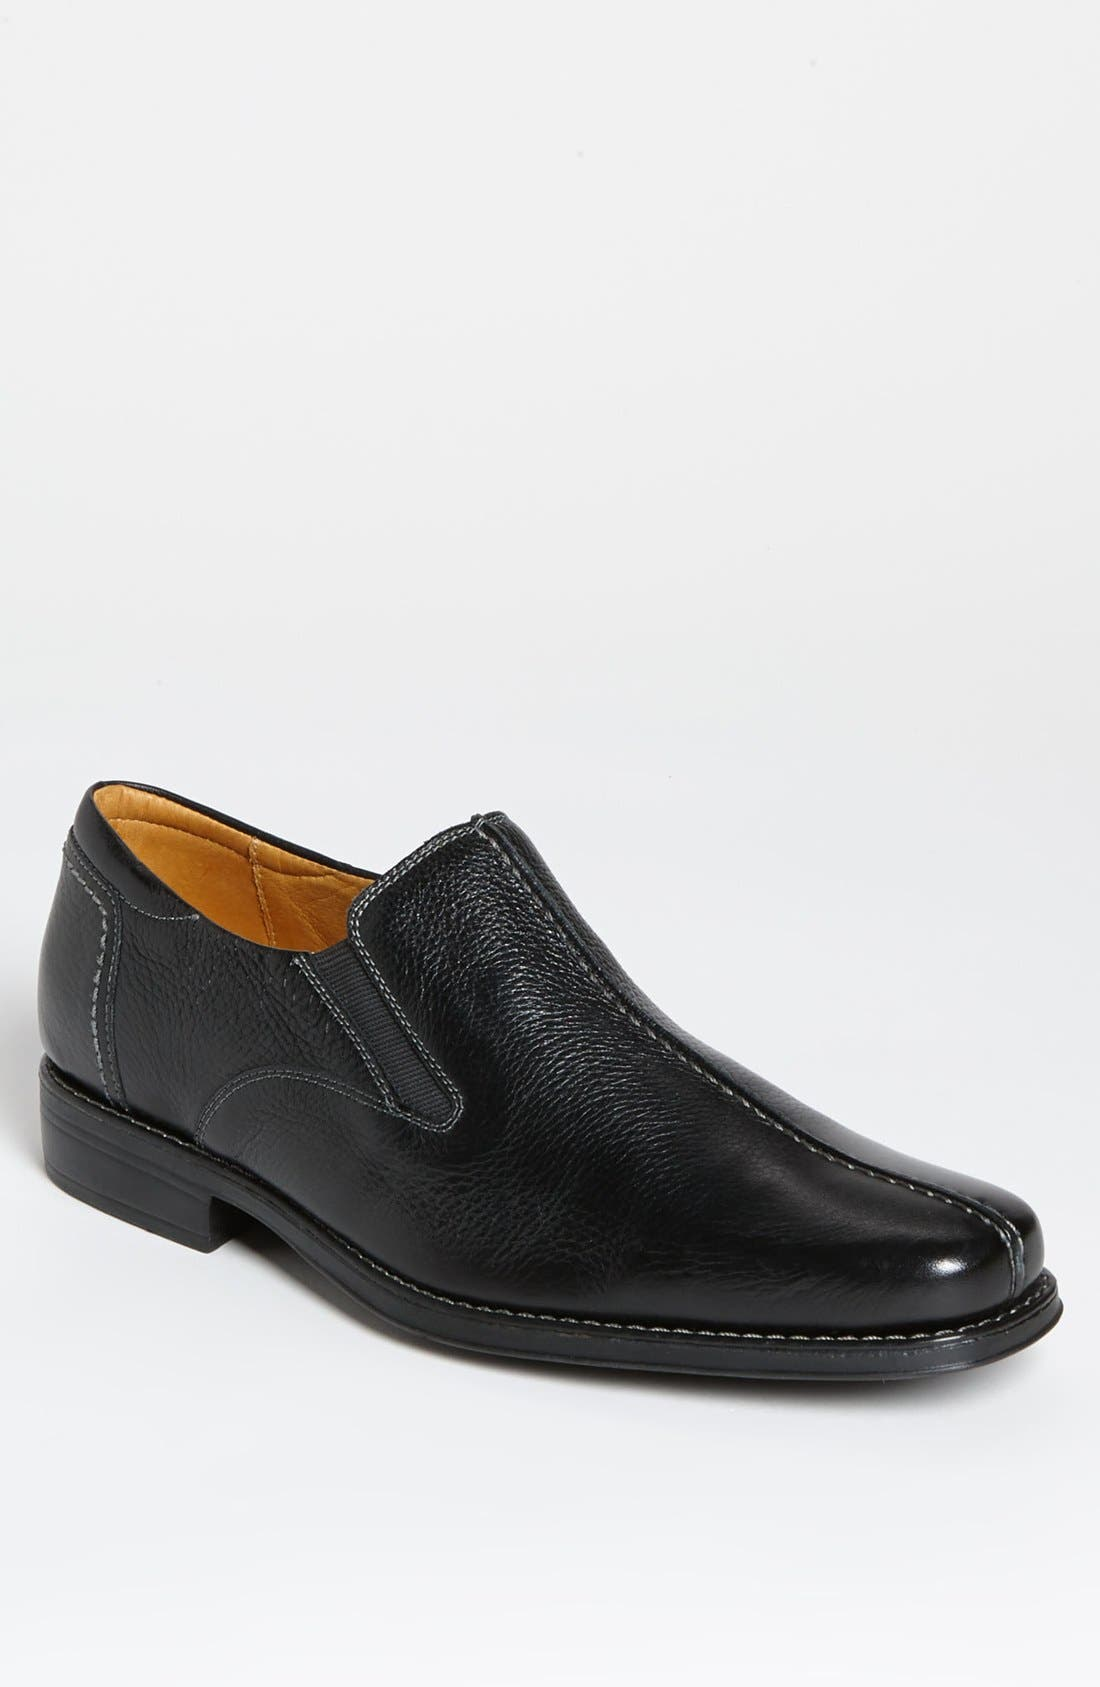 Alternate Image 1 Selected - Sandro Moscoloni 'Tampa' Loafer